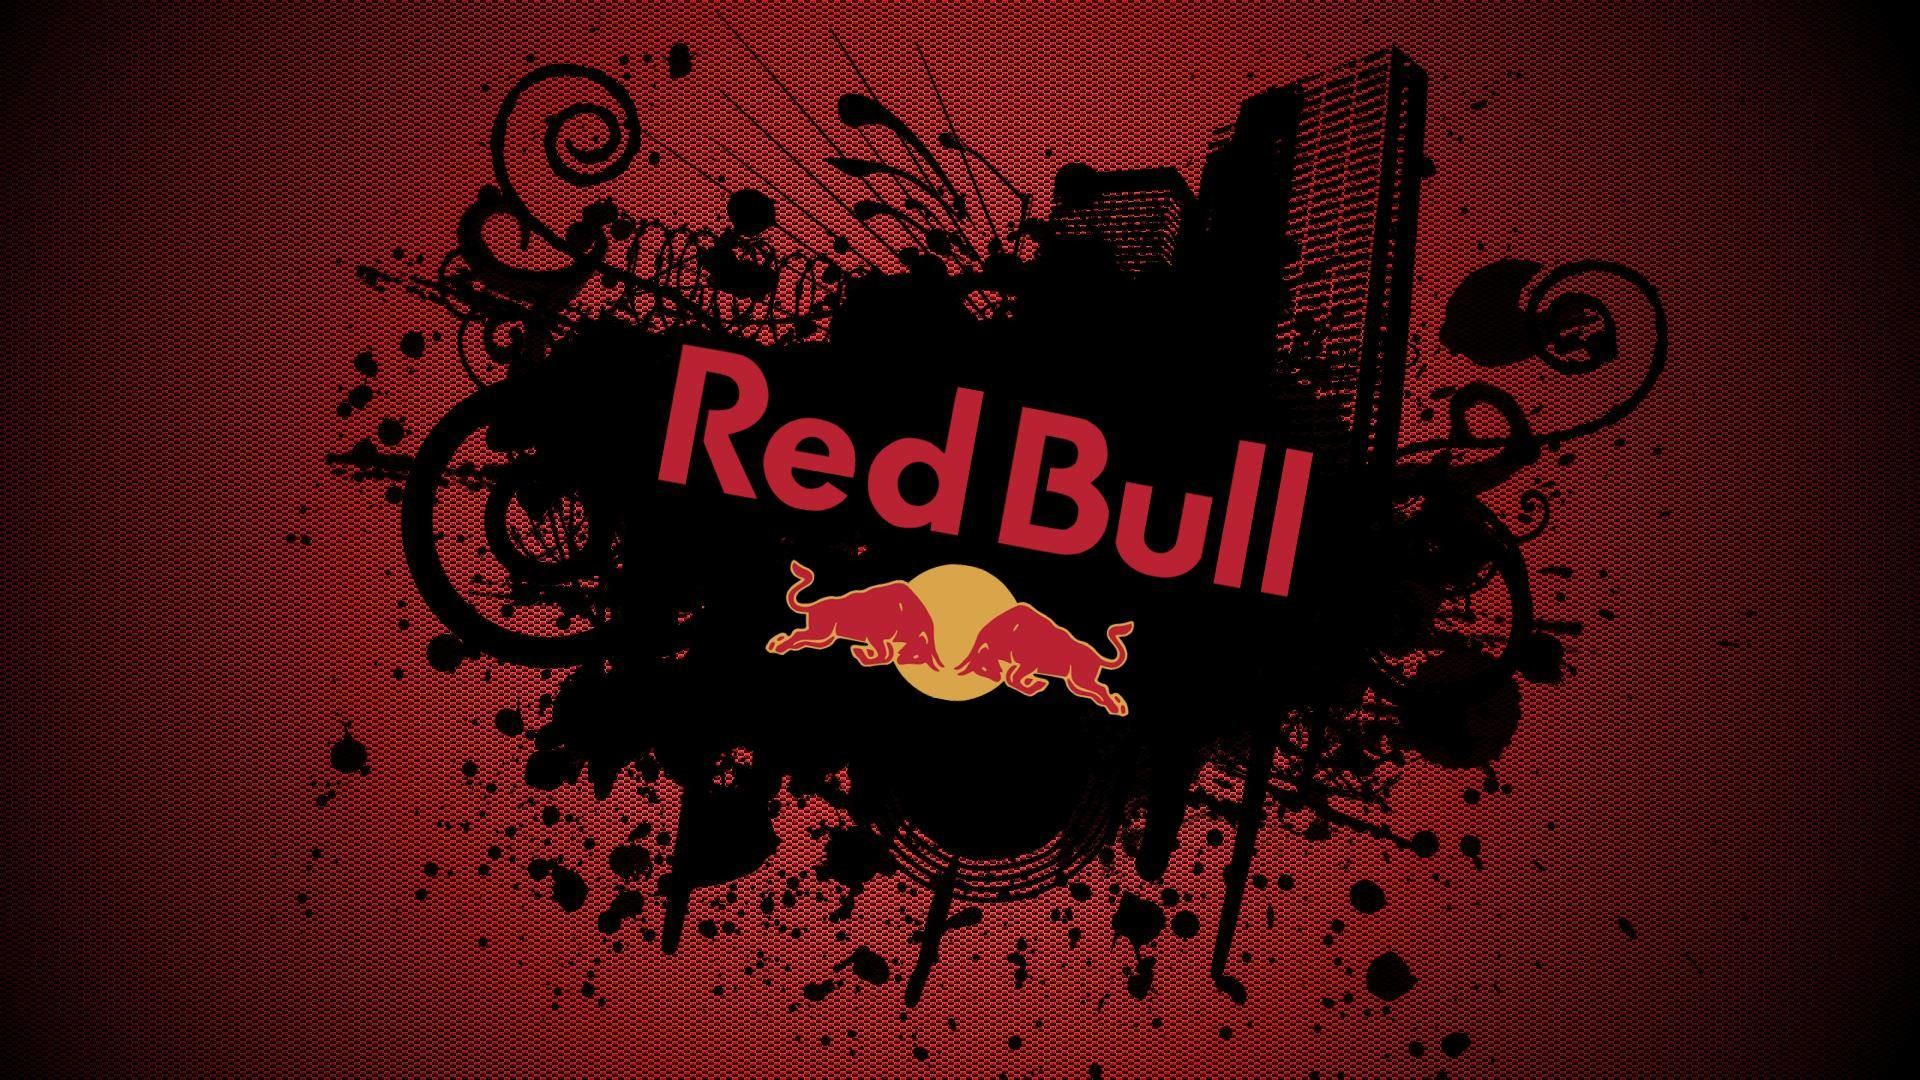 red bull research paper Market analysis - red bull essaysred bull is currently number two in the energy drinks market in the world and seeks to continually develop aggressively to become market leader through their only two product offers, red bull original and red bull sugarfree the aim of both these energy drinks is to.